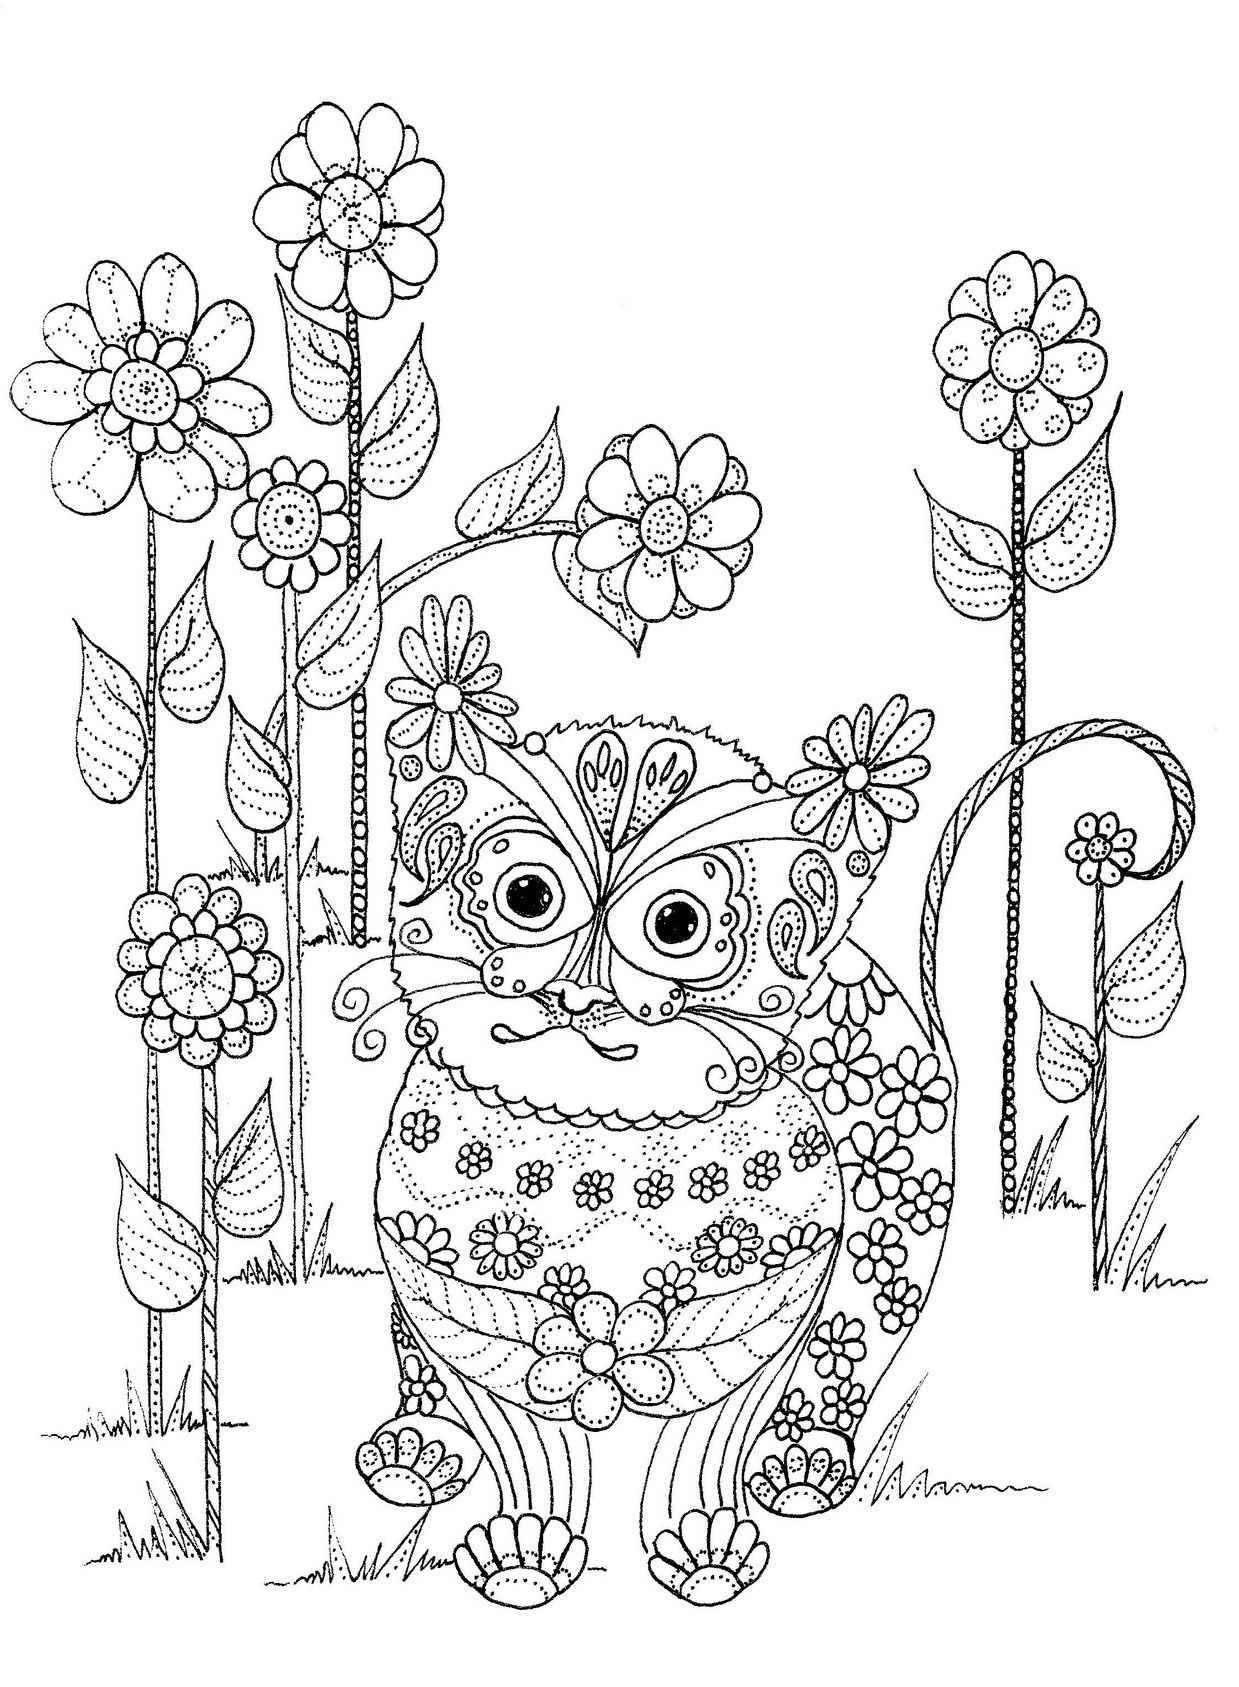 Coloring book kittens - Kitten And Flowers Coloring Page